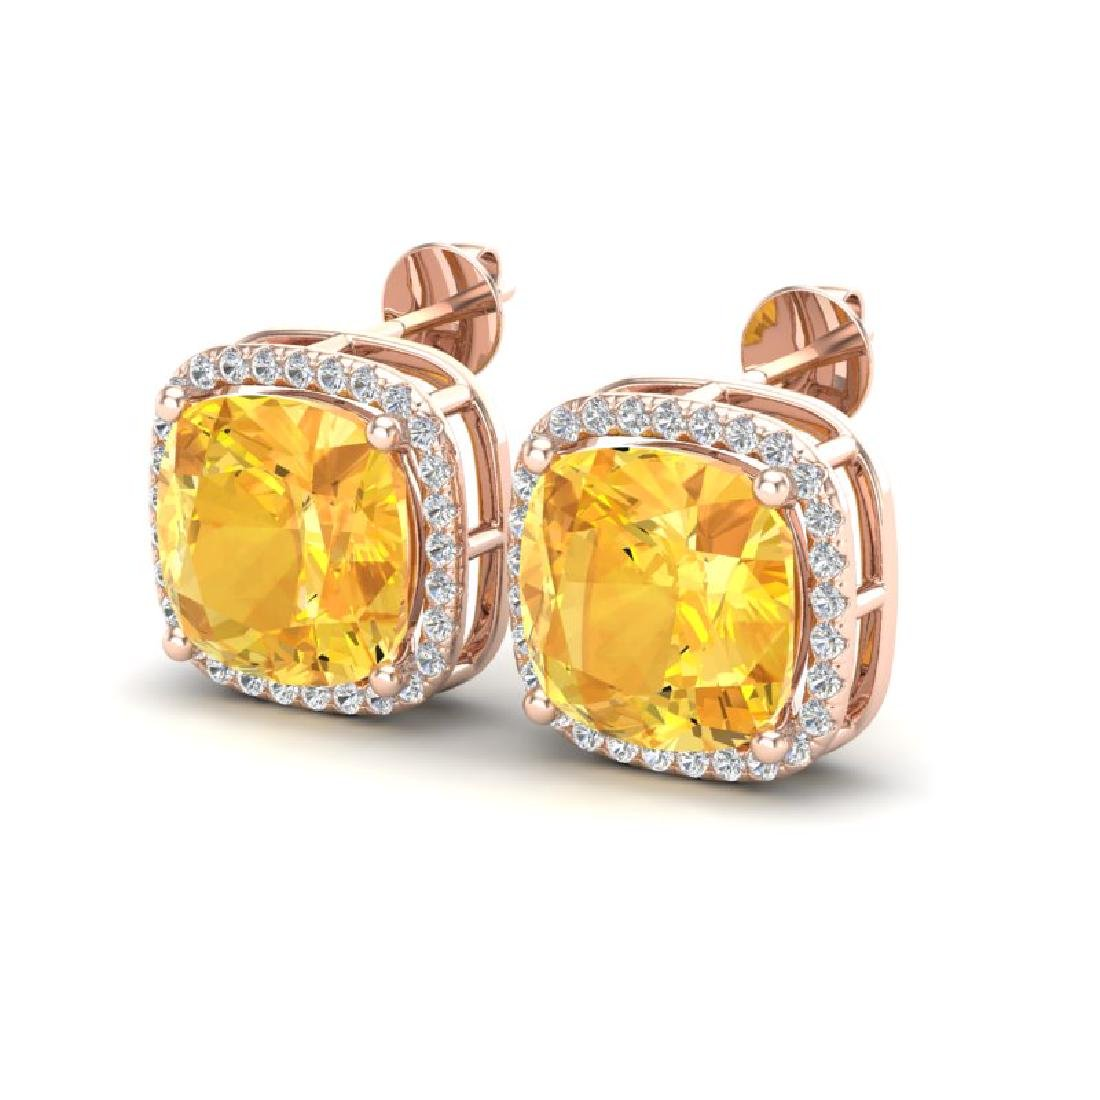 12 CTW Citrine & Micro Pave Halo VS/SI Diamond Earrings